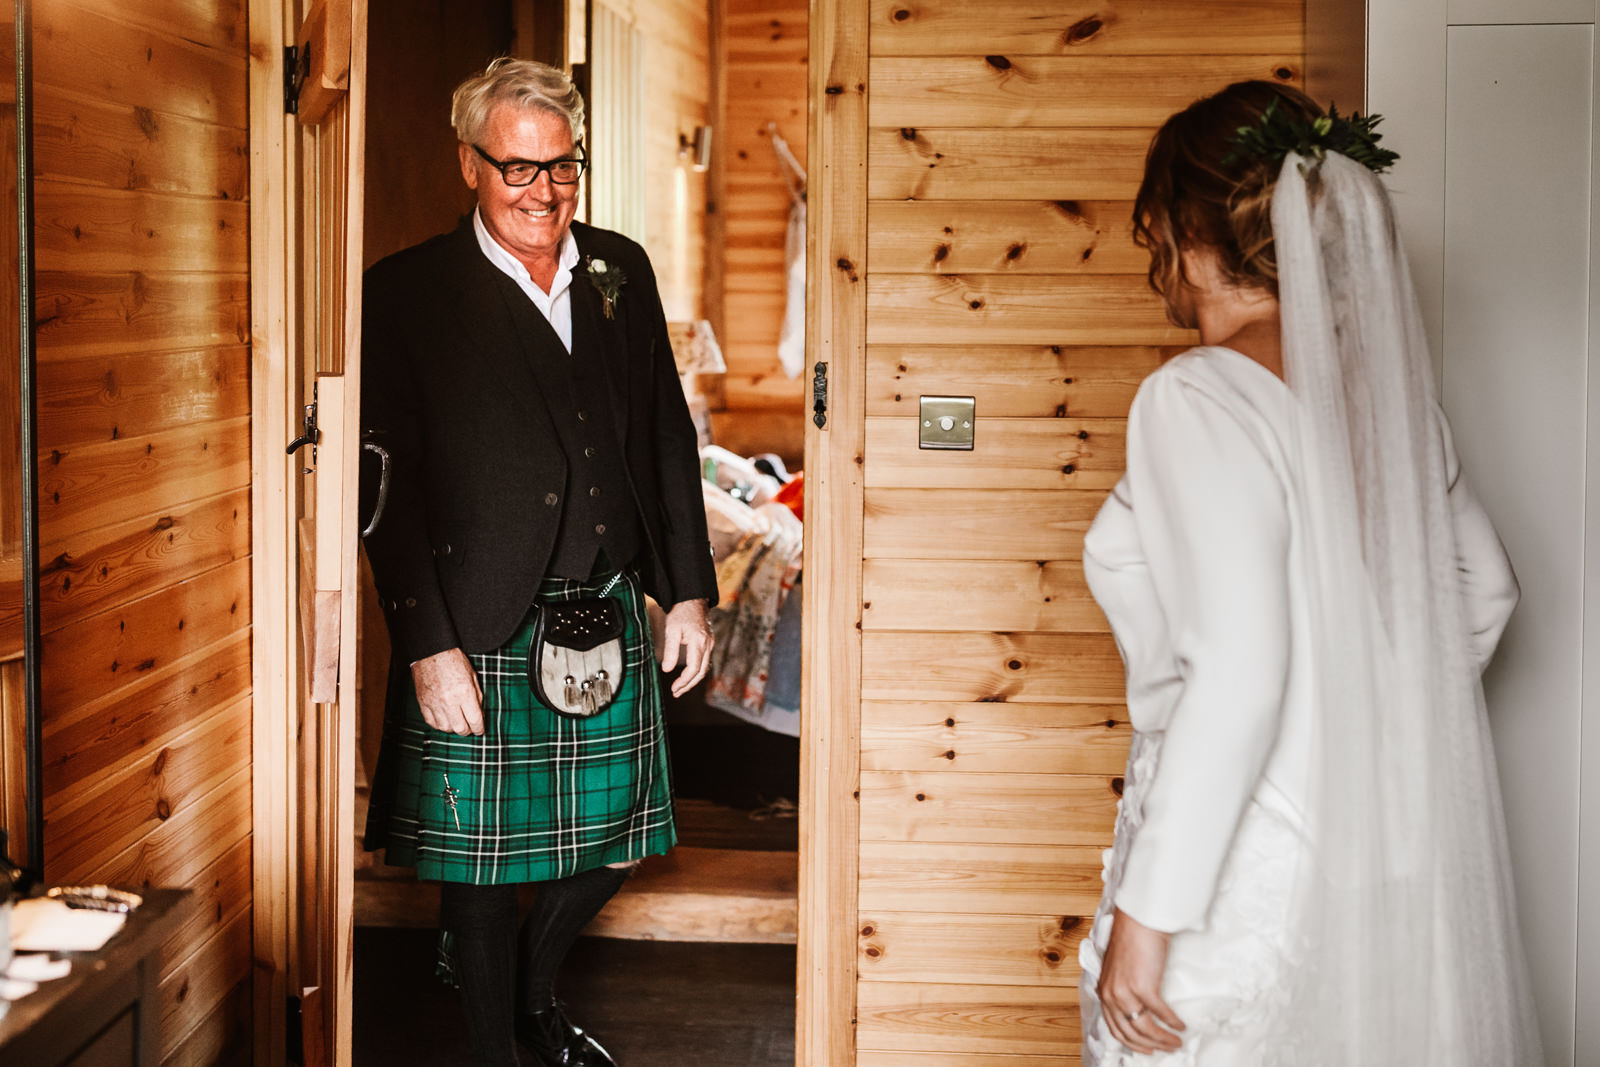 Father of the bride looks at his daughter for the first time in her wedding dress